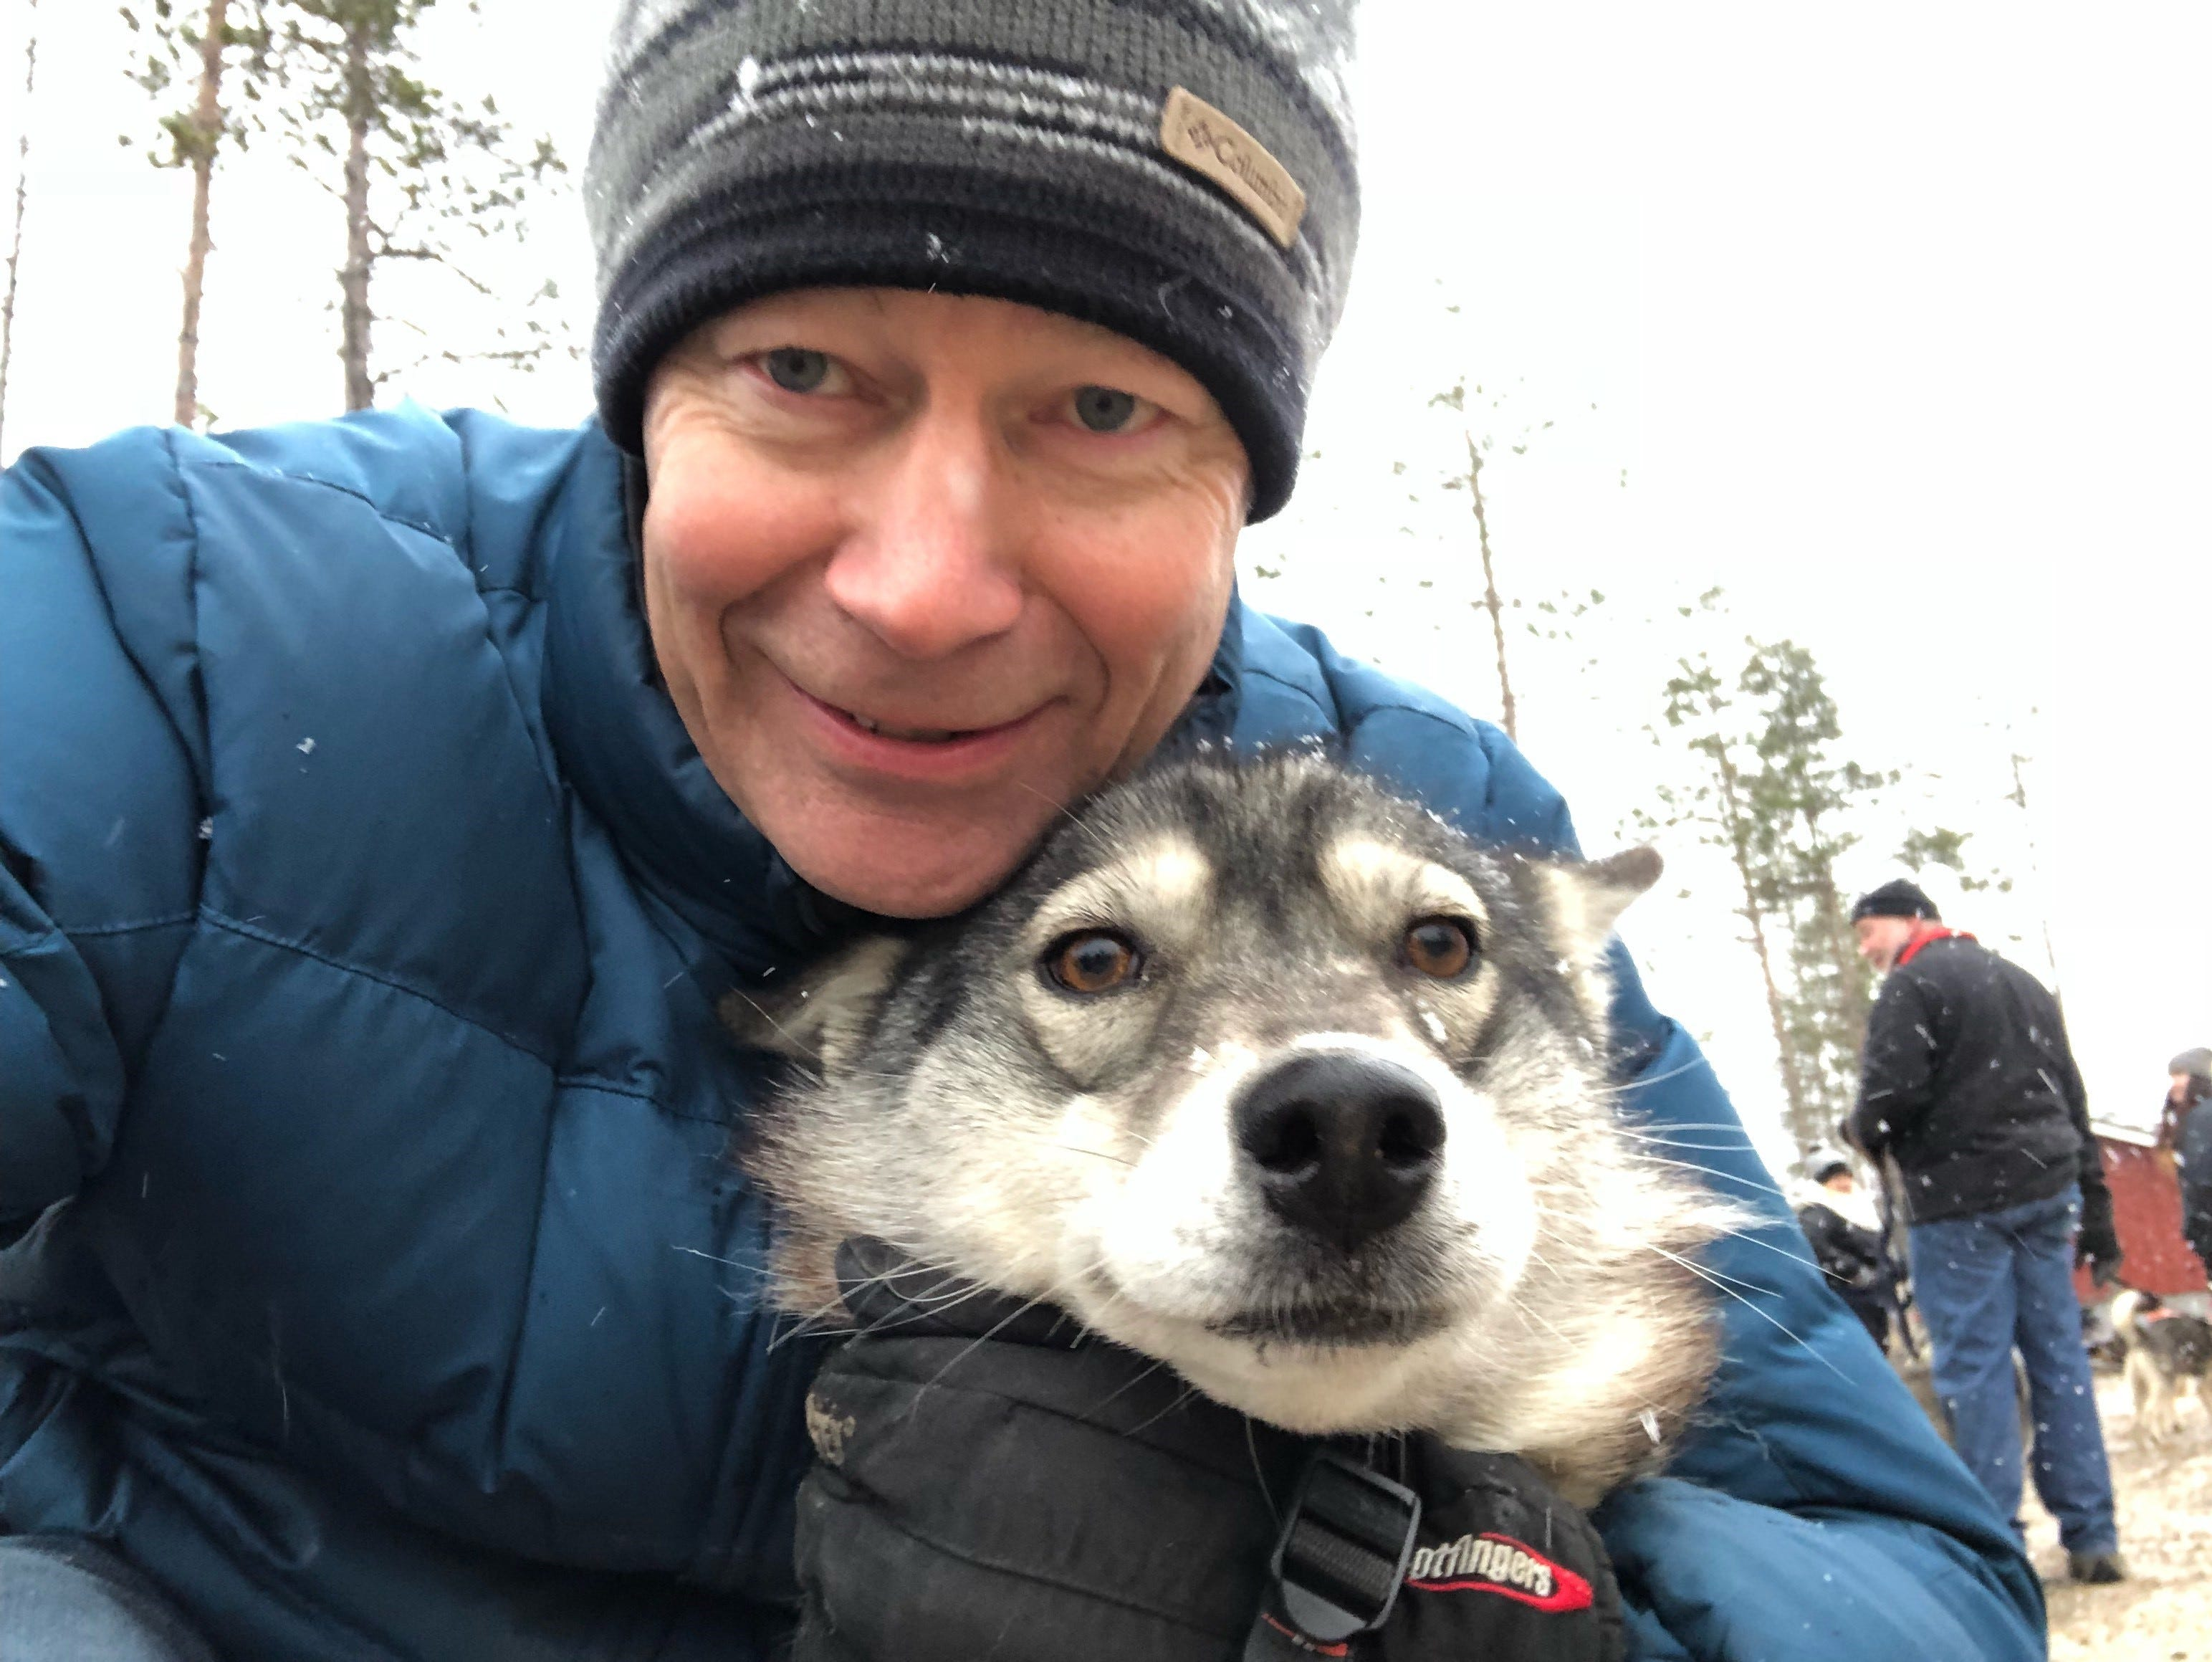 Yep, man's best friend. Ed McKenna snuggles with husky dog Zepo, his partner for some sledding fun in Finland.